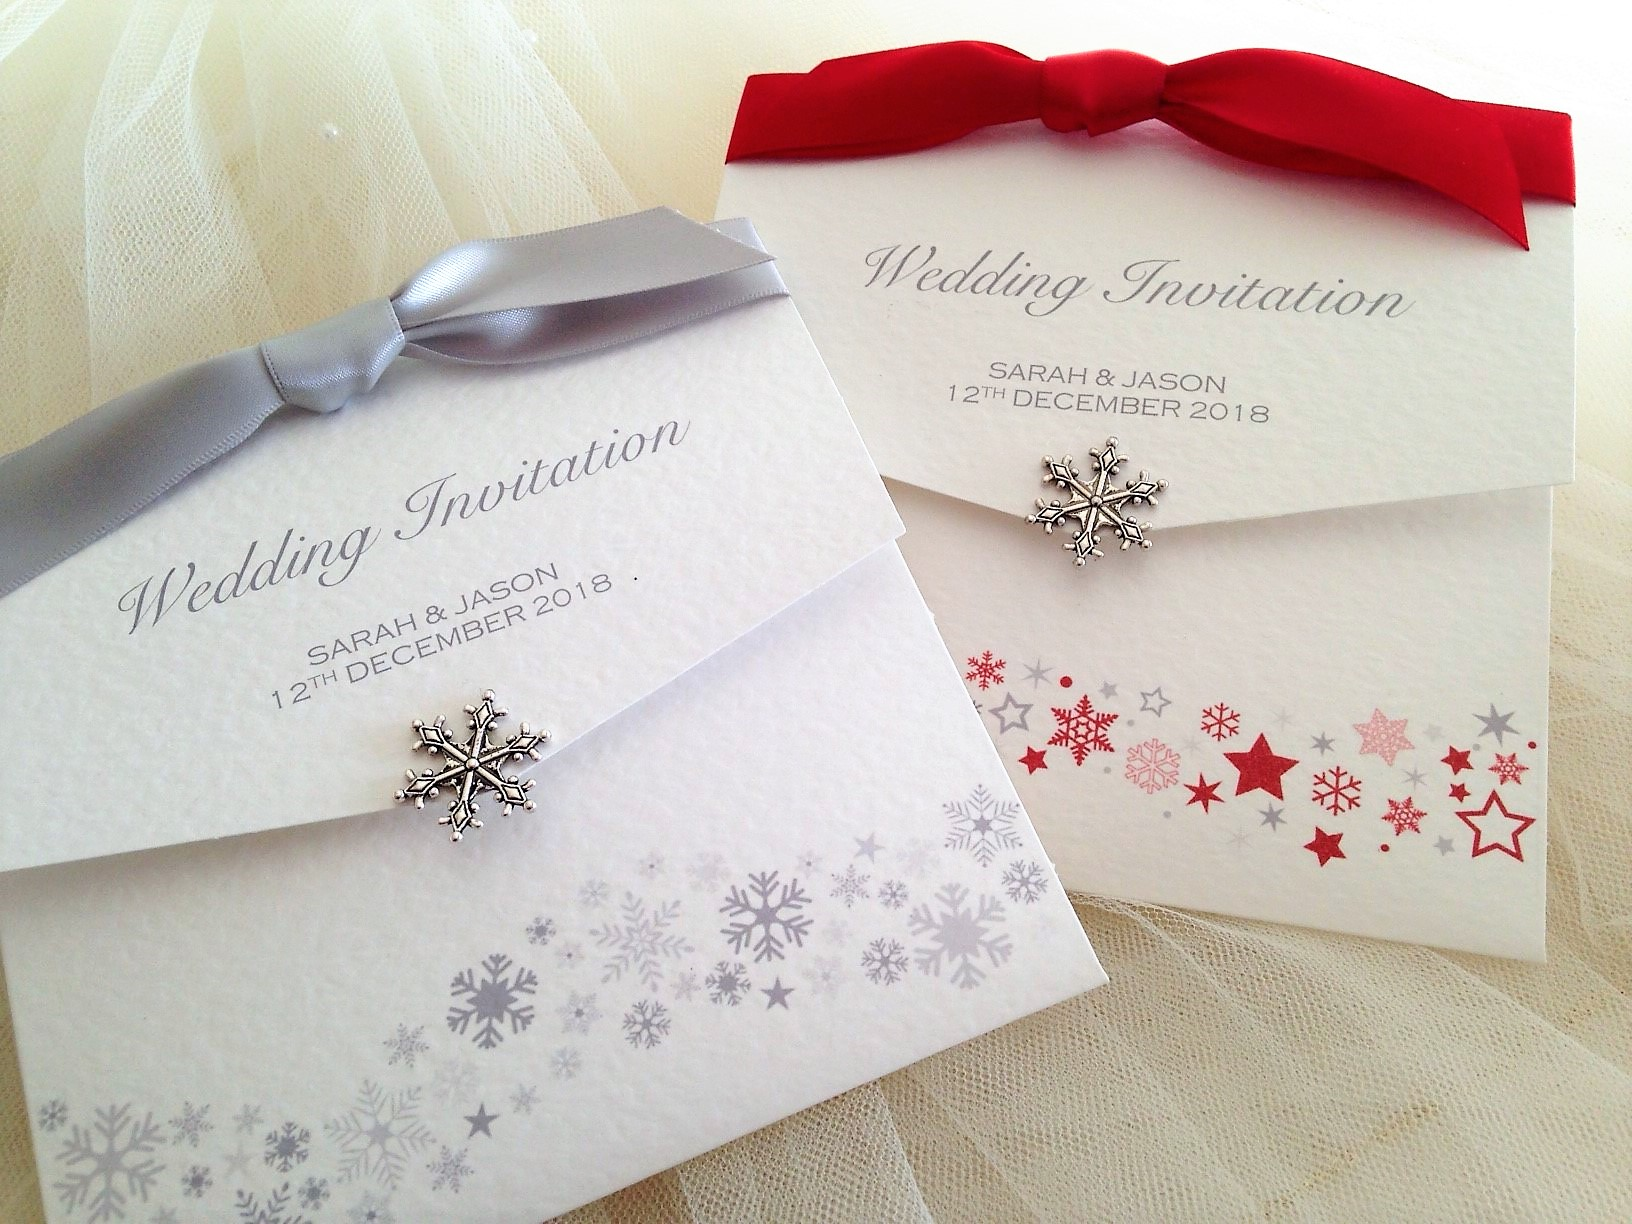 Rustic wedding invitations for your country wedding - Daisy Chain ...